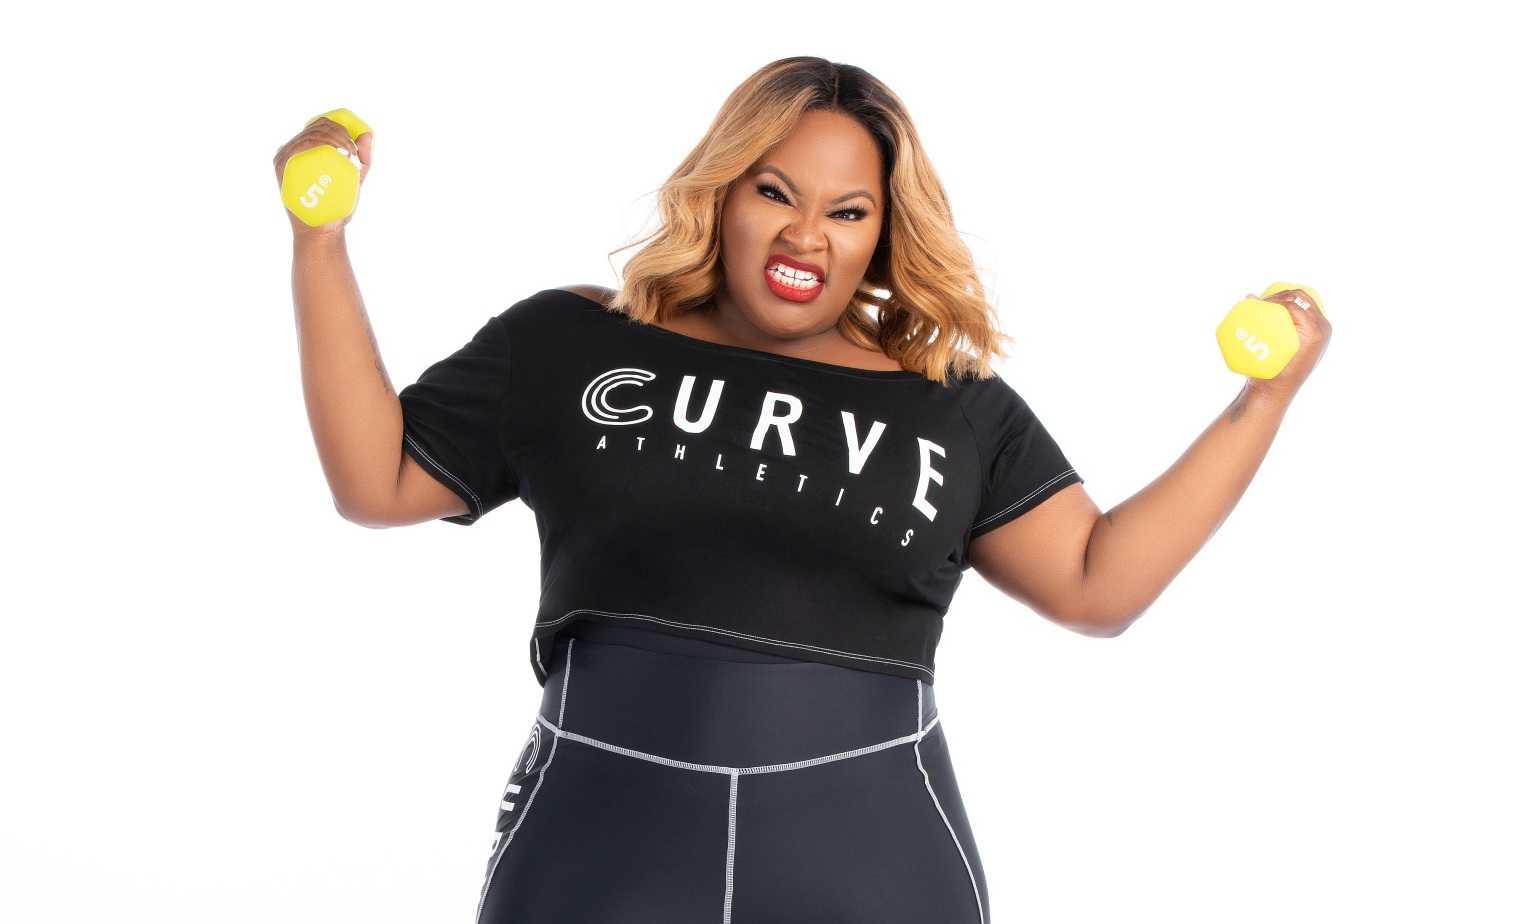 Curve Athletics - Tasha Cobbs